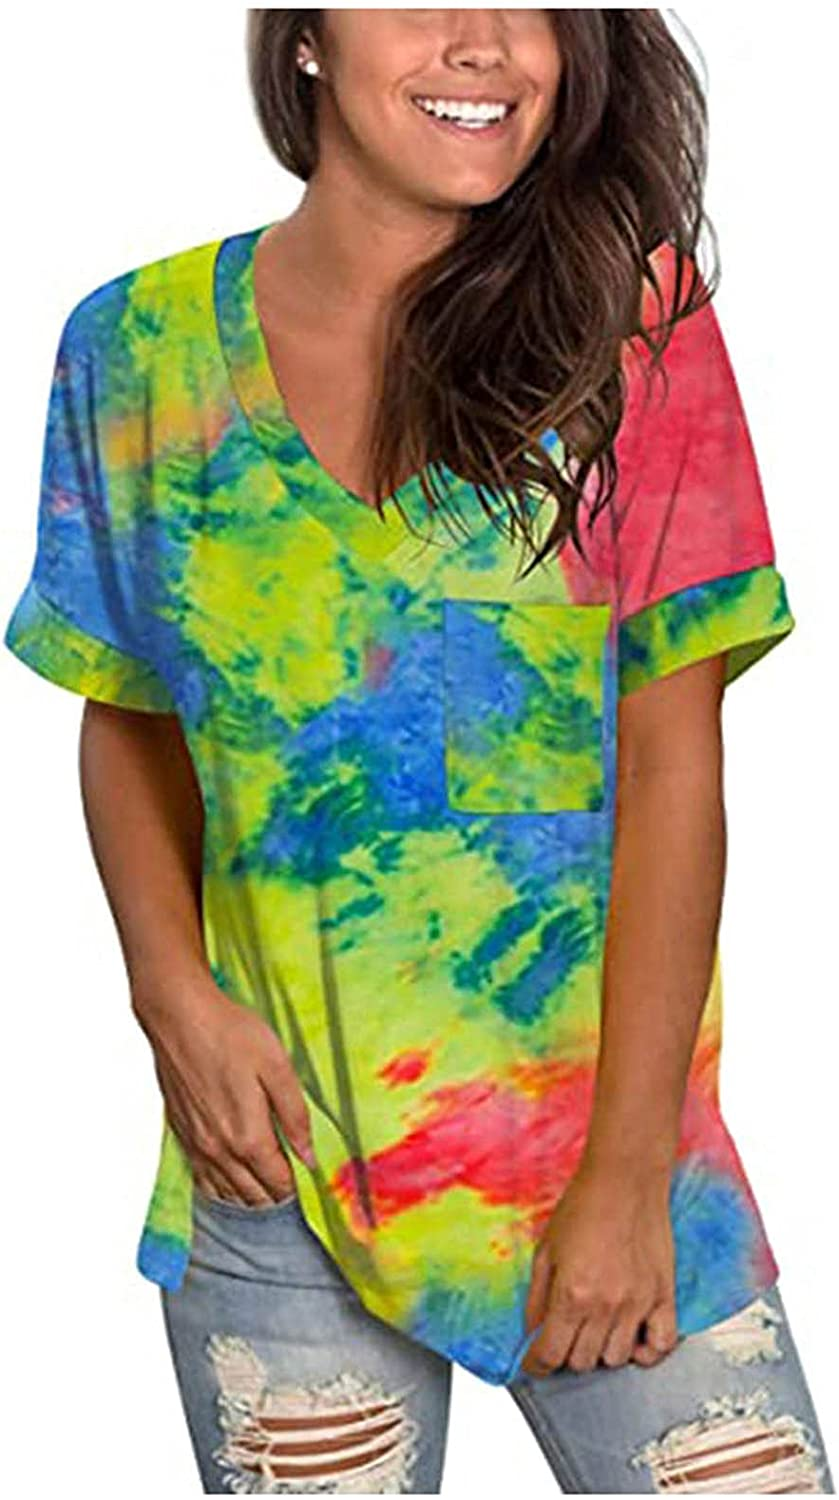 Summer Tops for Women, 2021 Women Casual Gradient Tops V-Neck Tees with Sleeves T-Shirt Printed Side Split Tunic Blouses